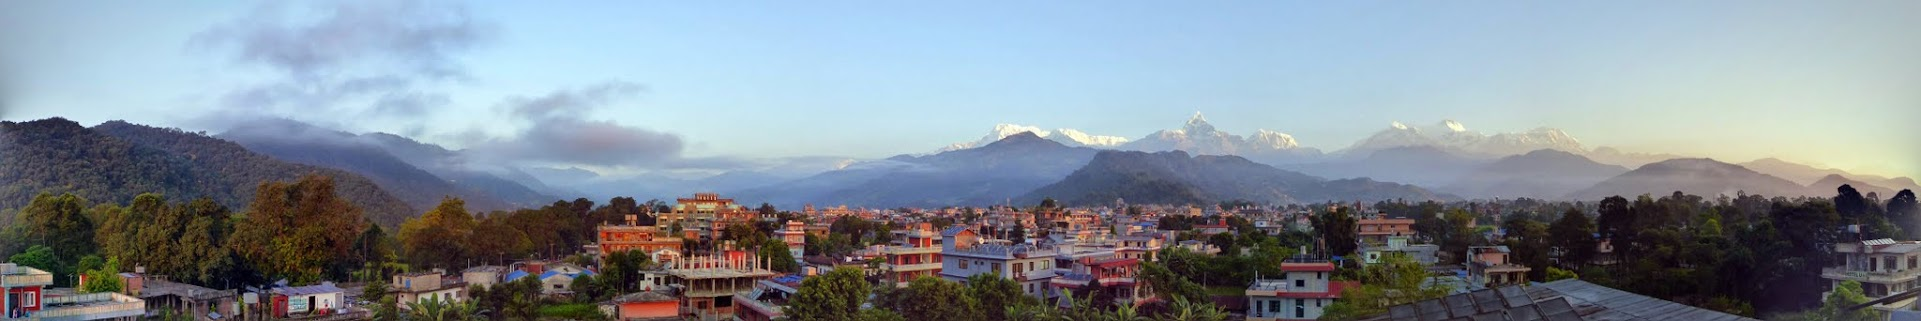 Panorama view of Himalaya range from Pokhara, Nepal